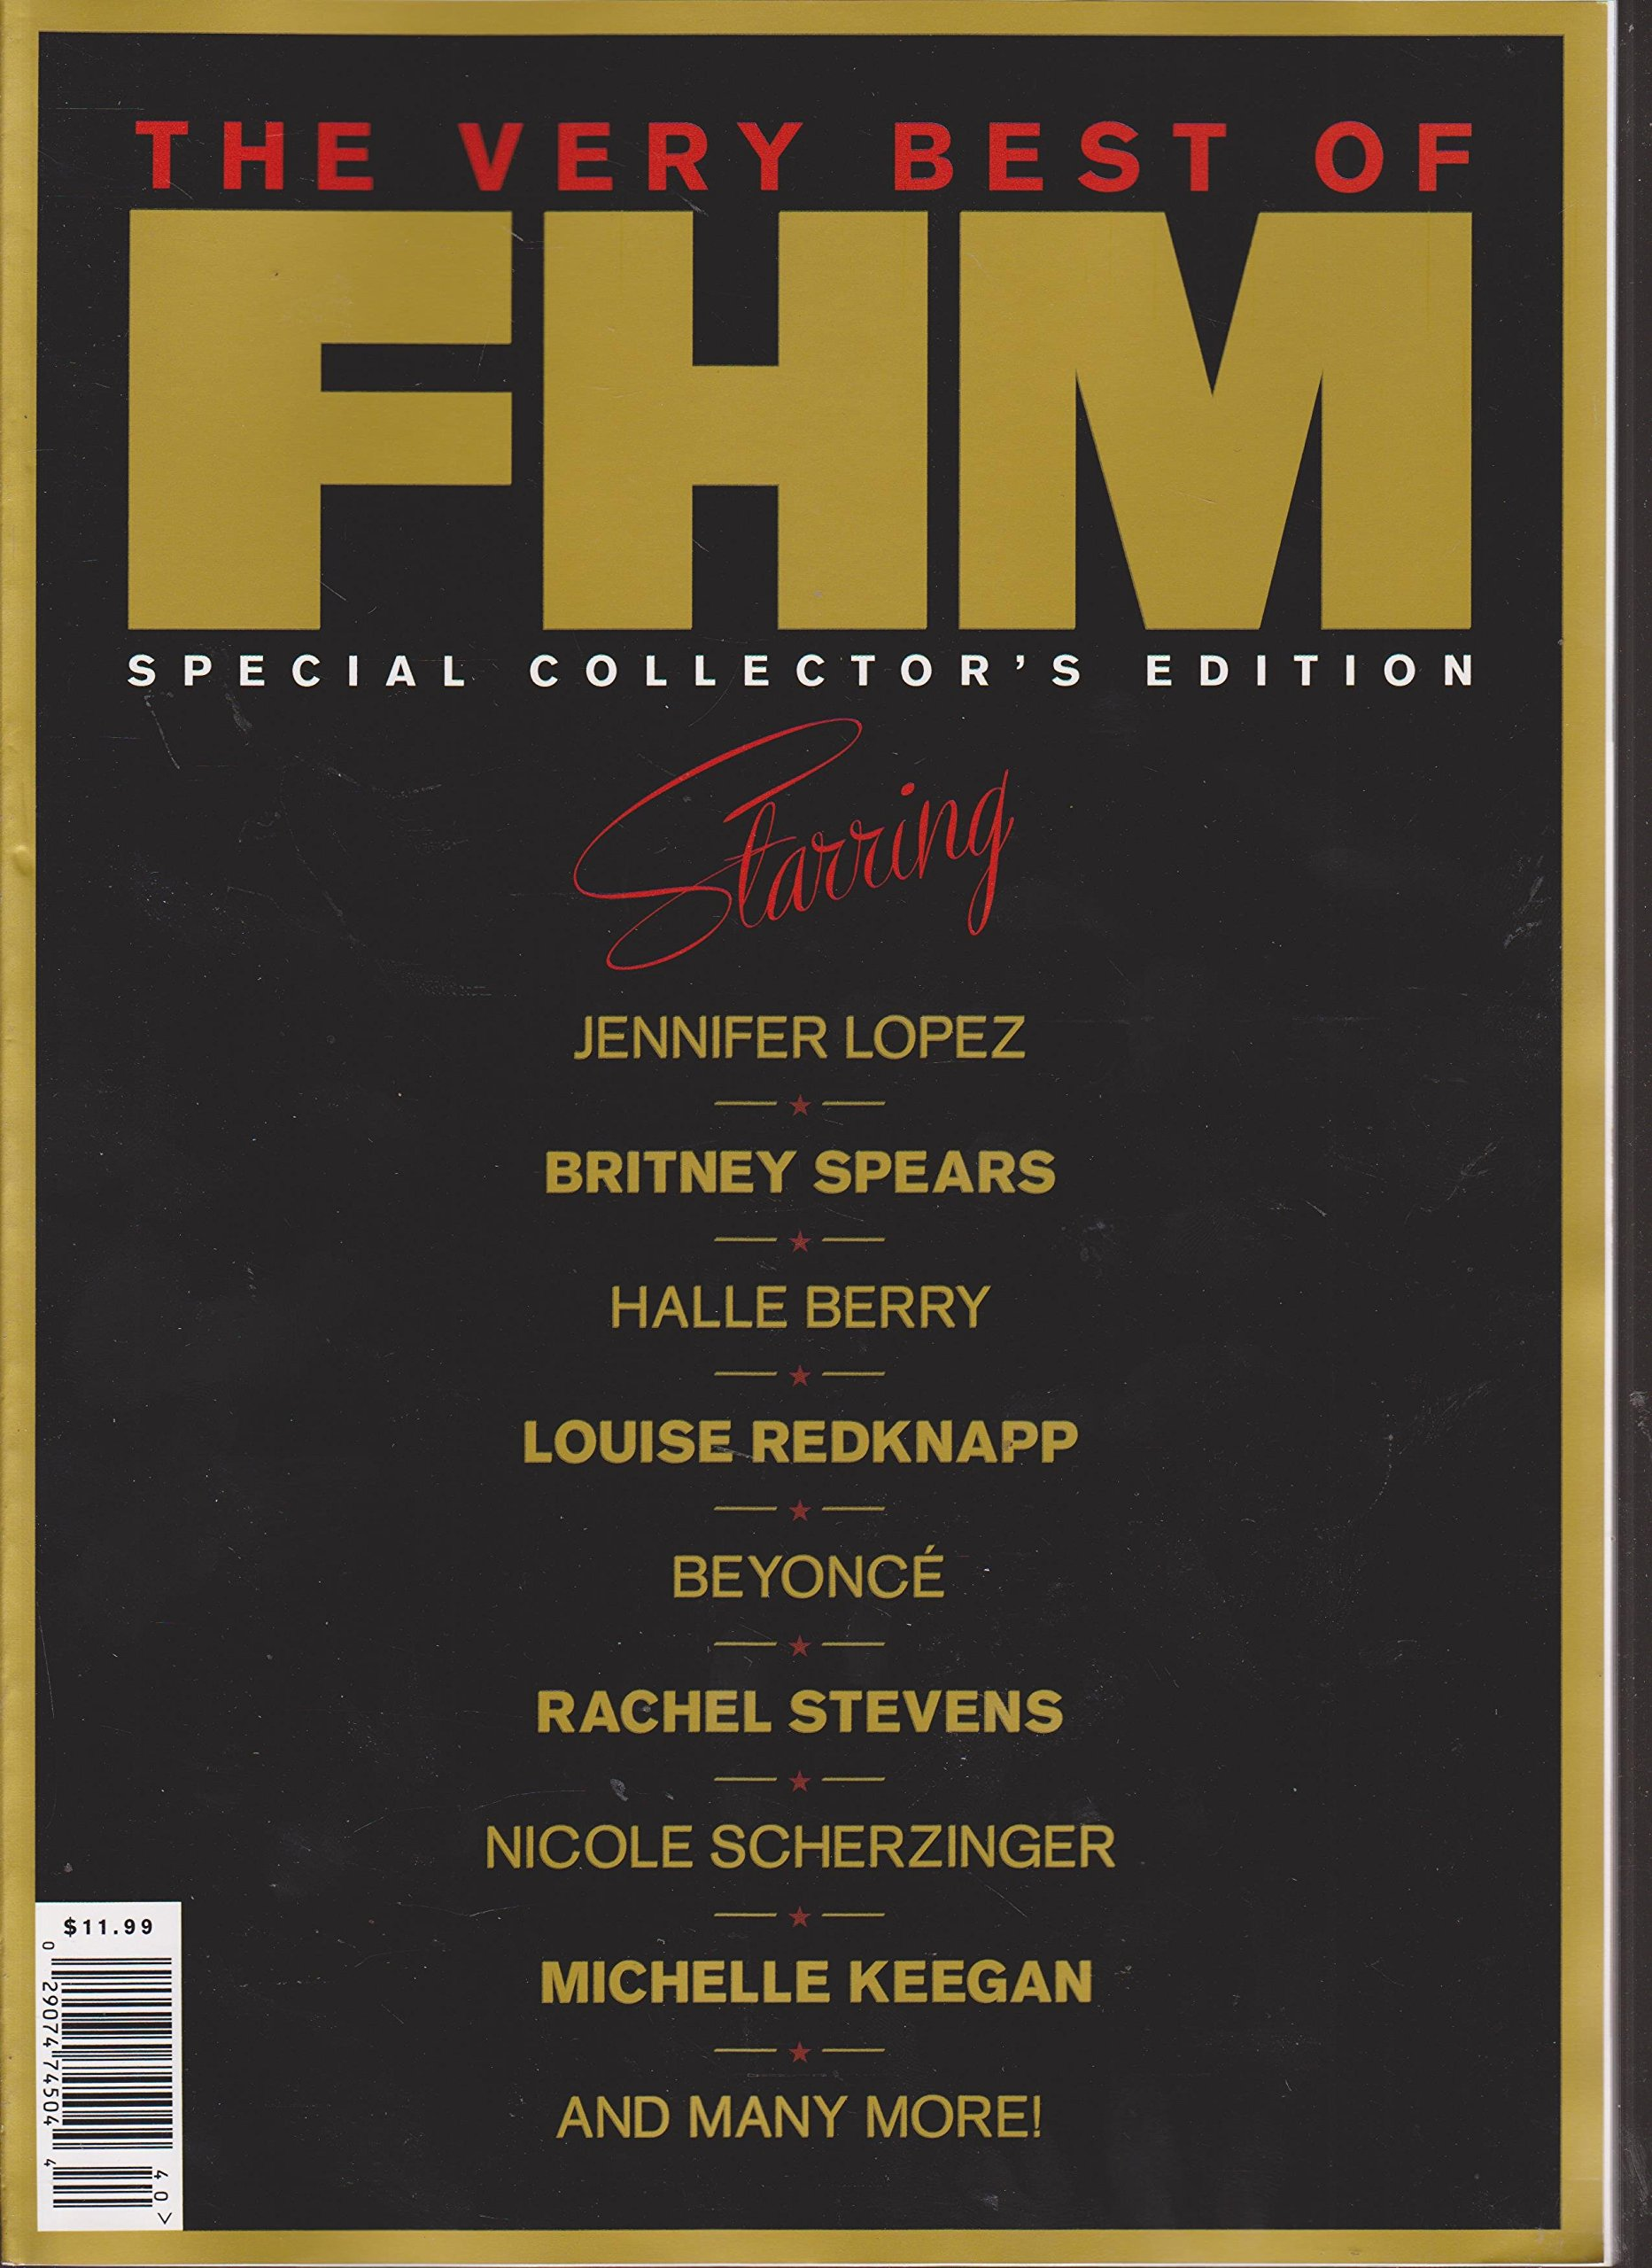 The Very Best of FHM Magazine 2016 PDF